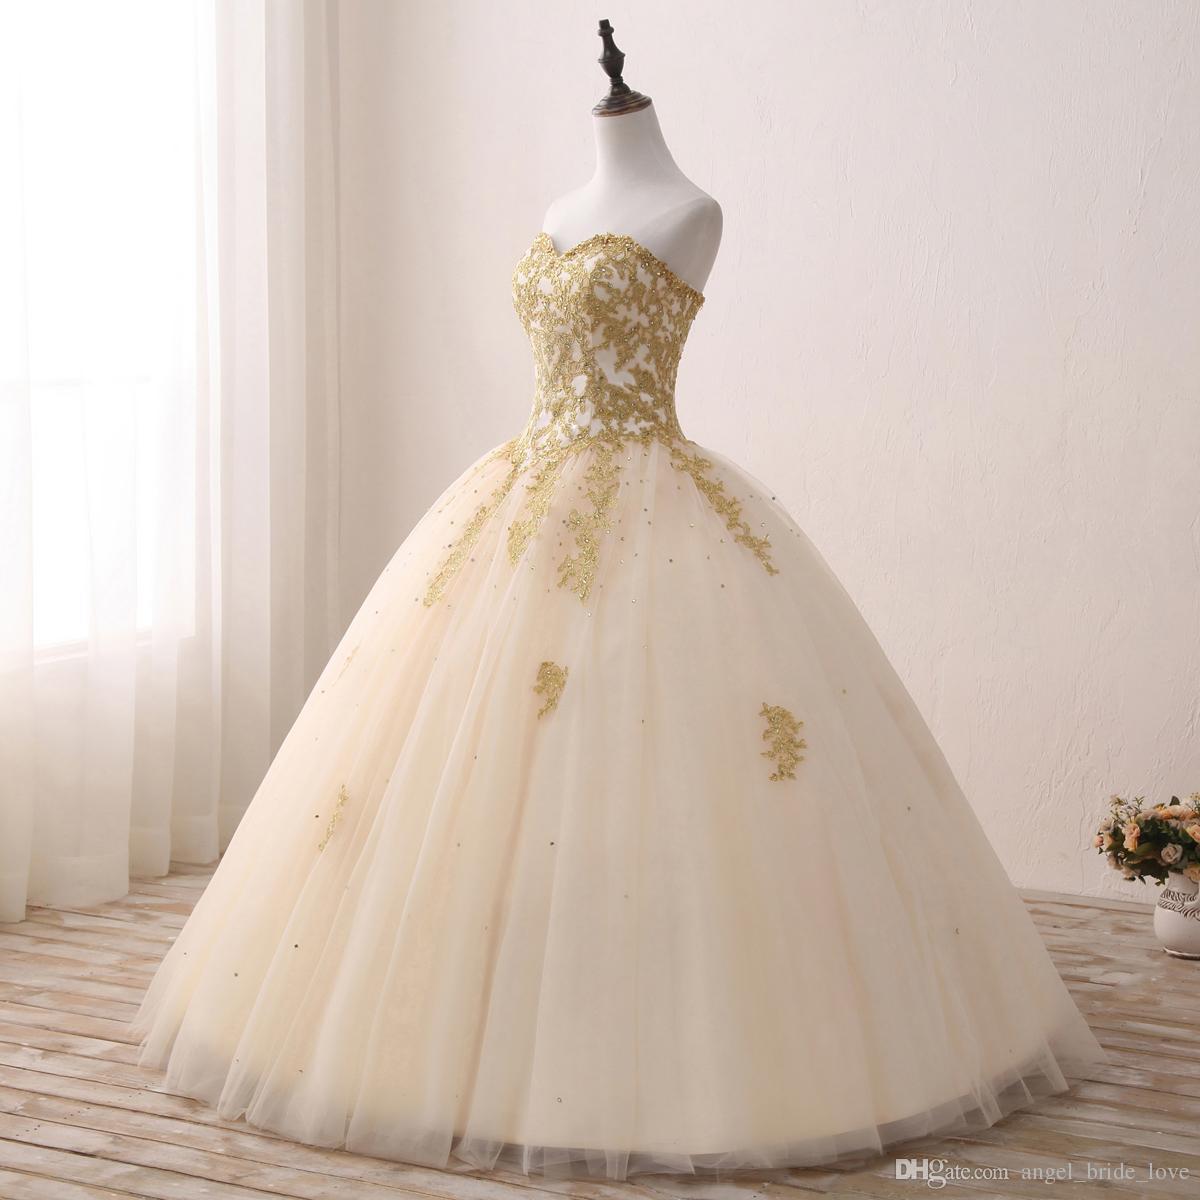 New Gold Appliques Ball Gown Quinceanera Dress 2018 Sparkle Crystal Tulle Floor-length Sweet 16 Dresses 15 Year Prom Gowns BQ42